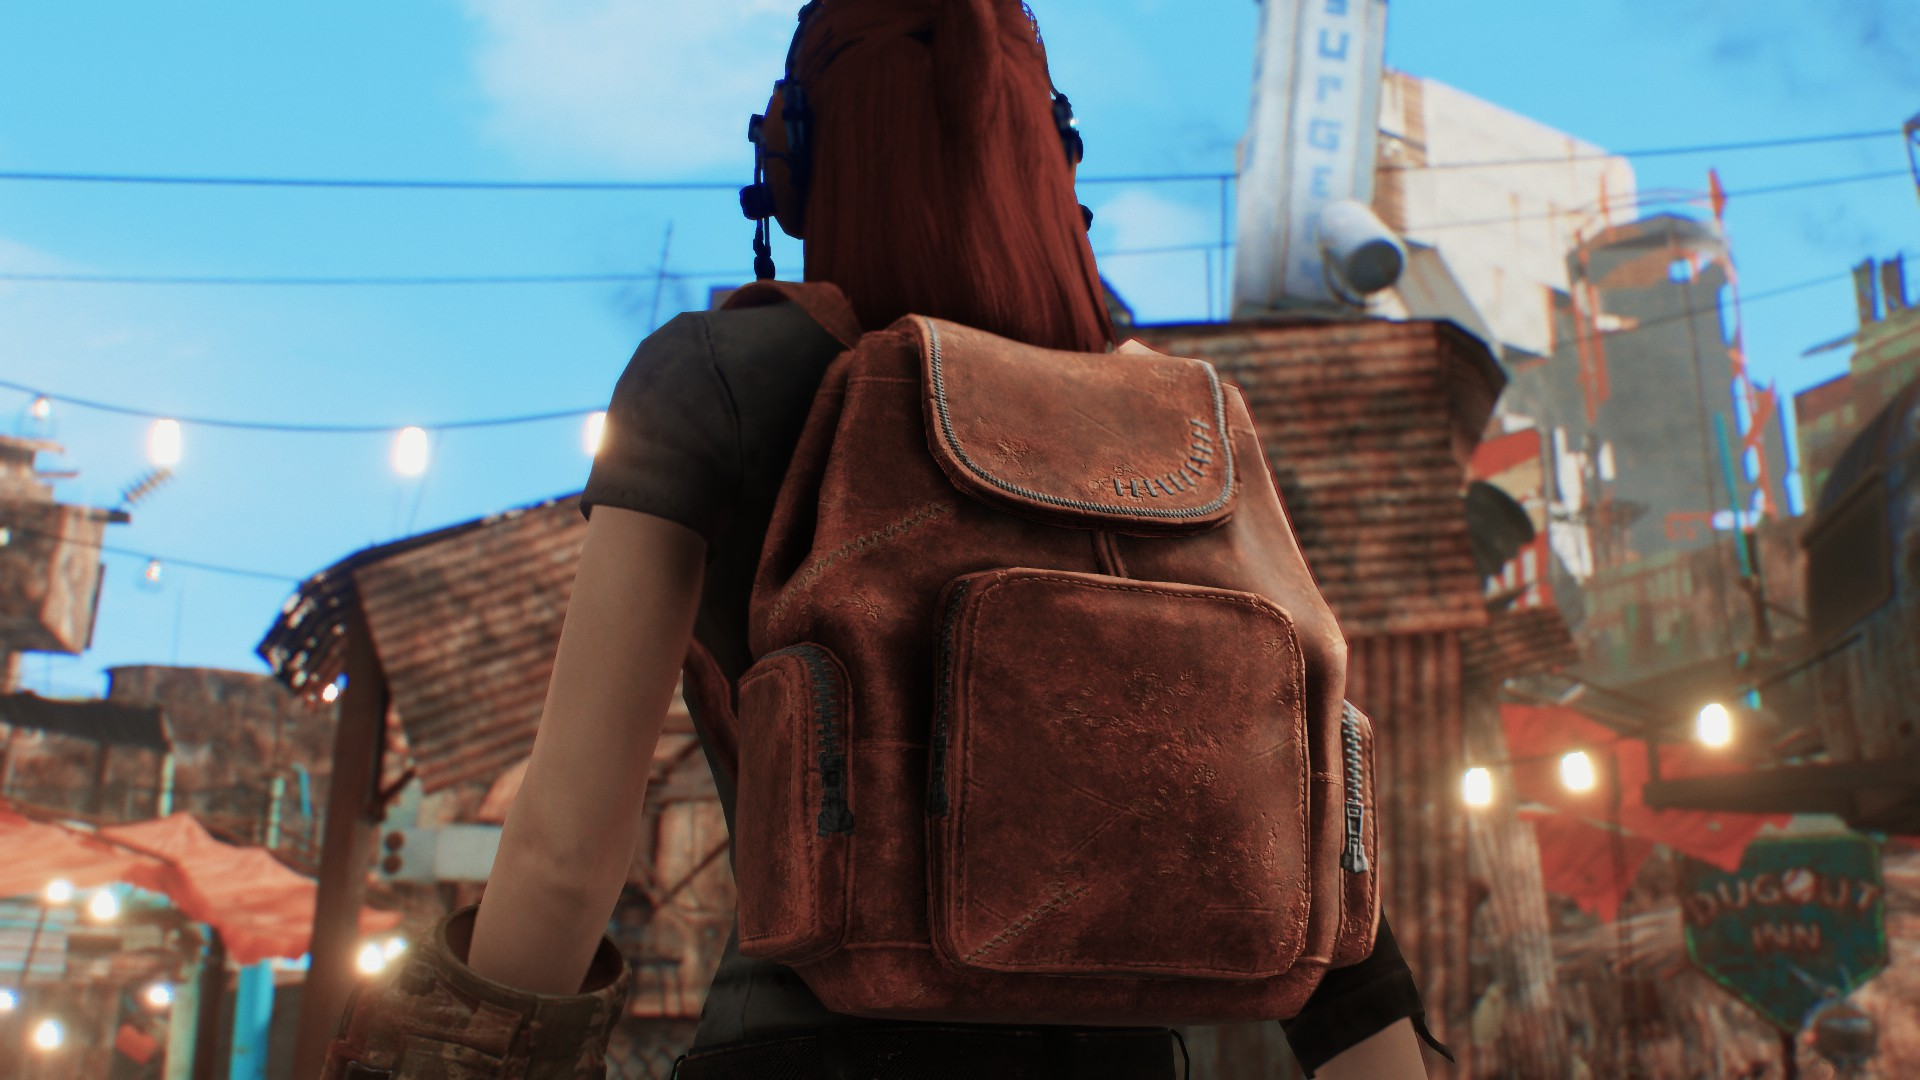 New Fallout 4 Scavver Backpack Mod Adds Two New Backpacks to